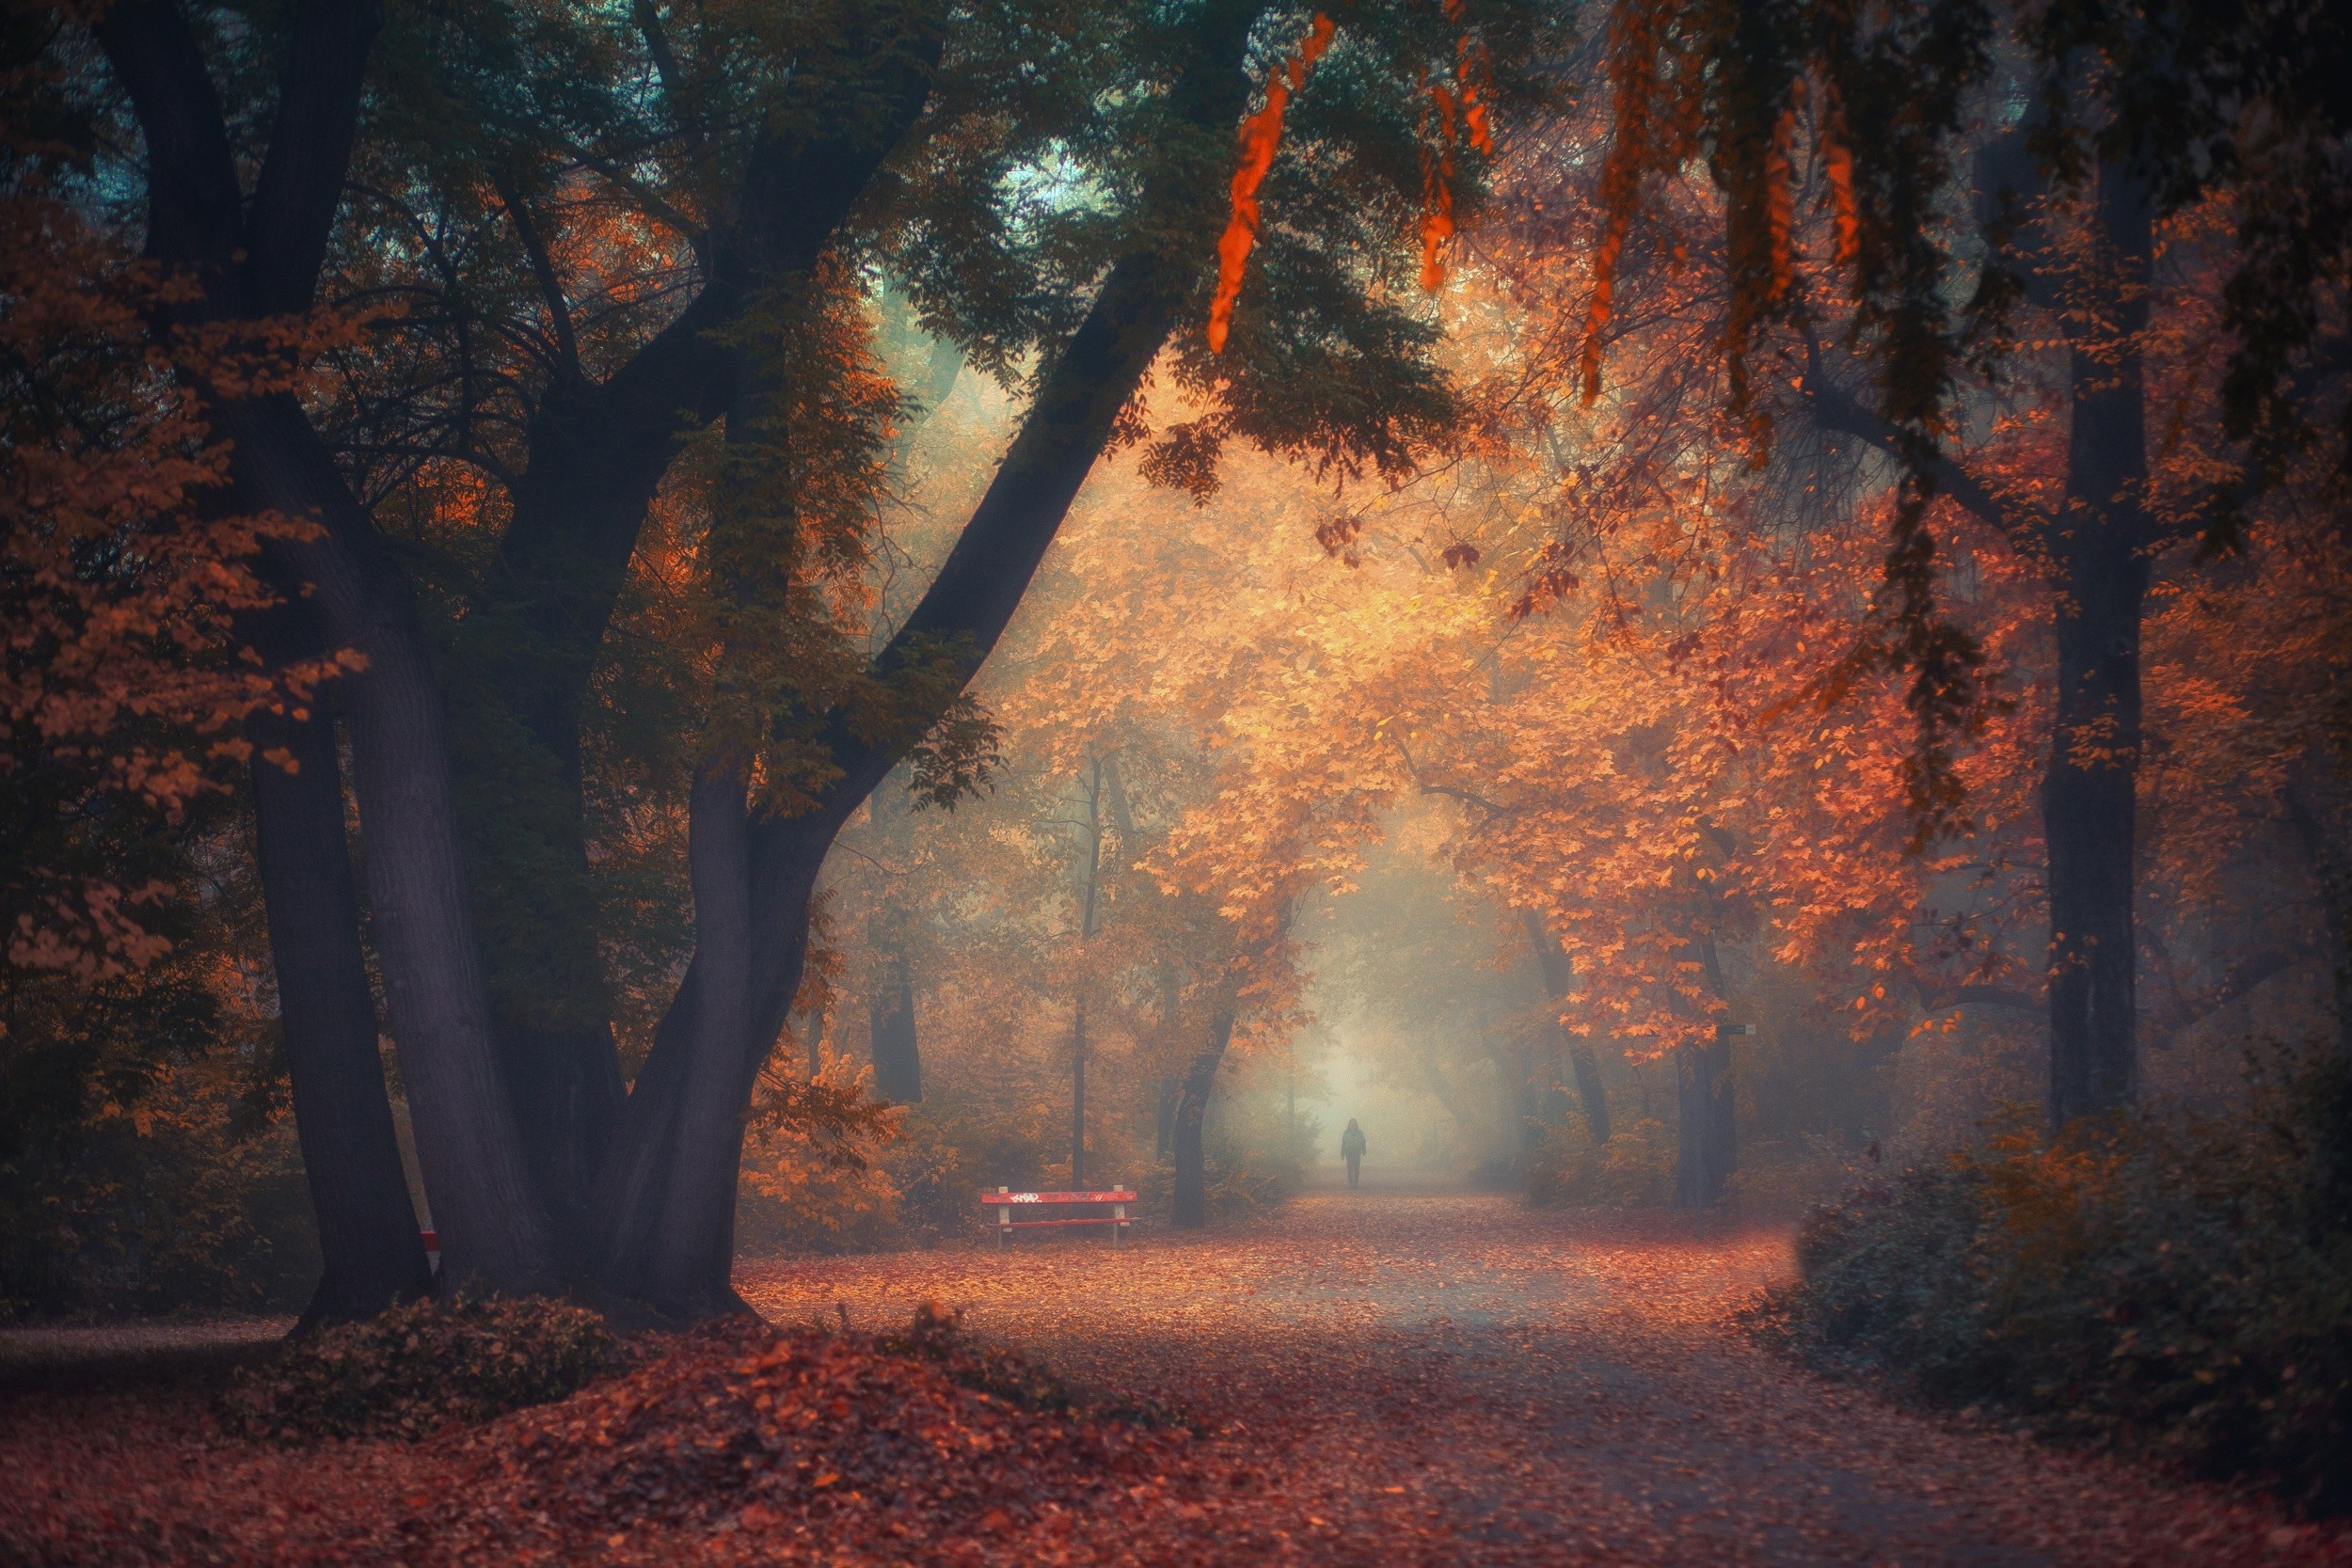 Wallpaper Backgrounds Fall Walking Nature Photography Landscape Park Morning